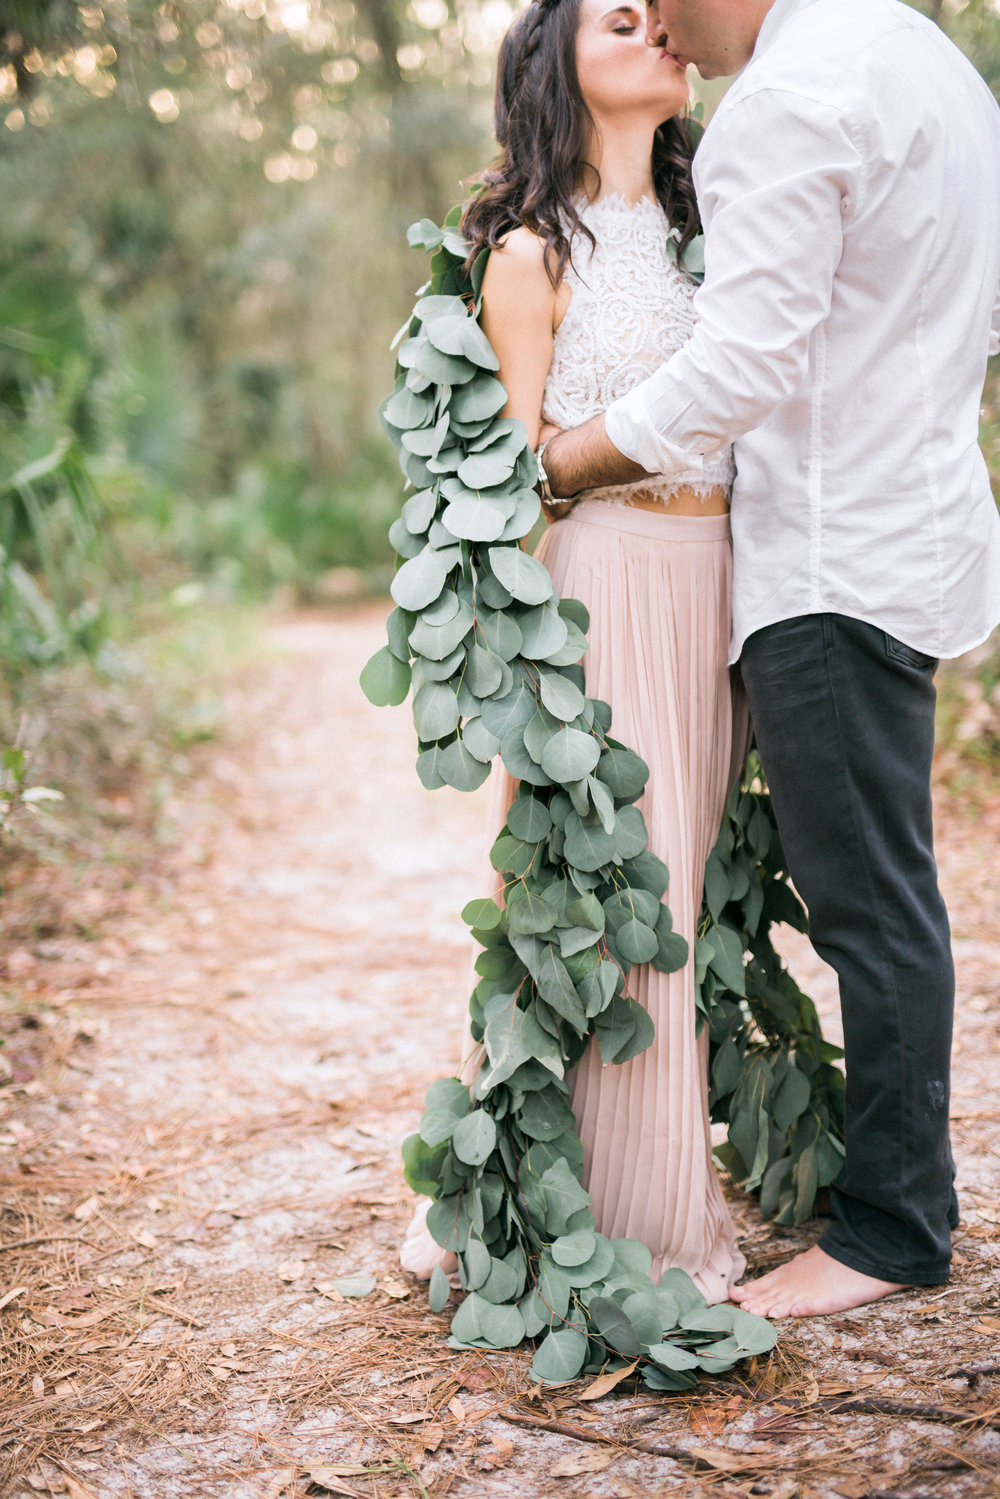 Eucalyptus garland used as greenery/floral shrug for styled engagement shoot at Wekiwa Springs State Park